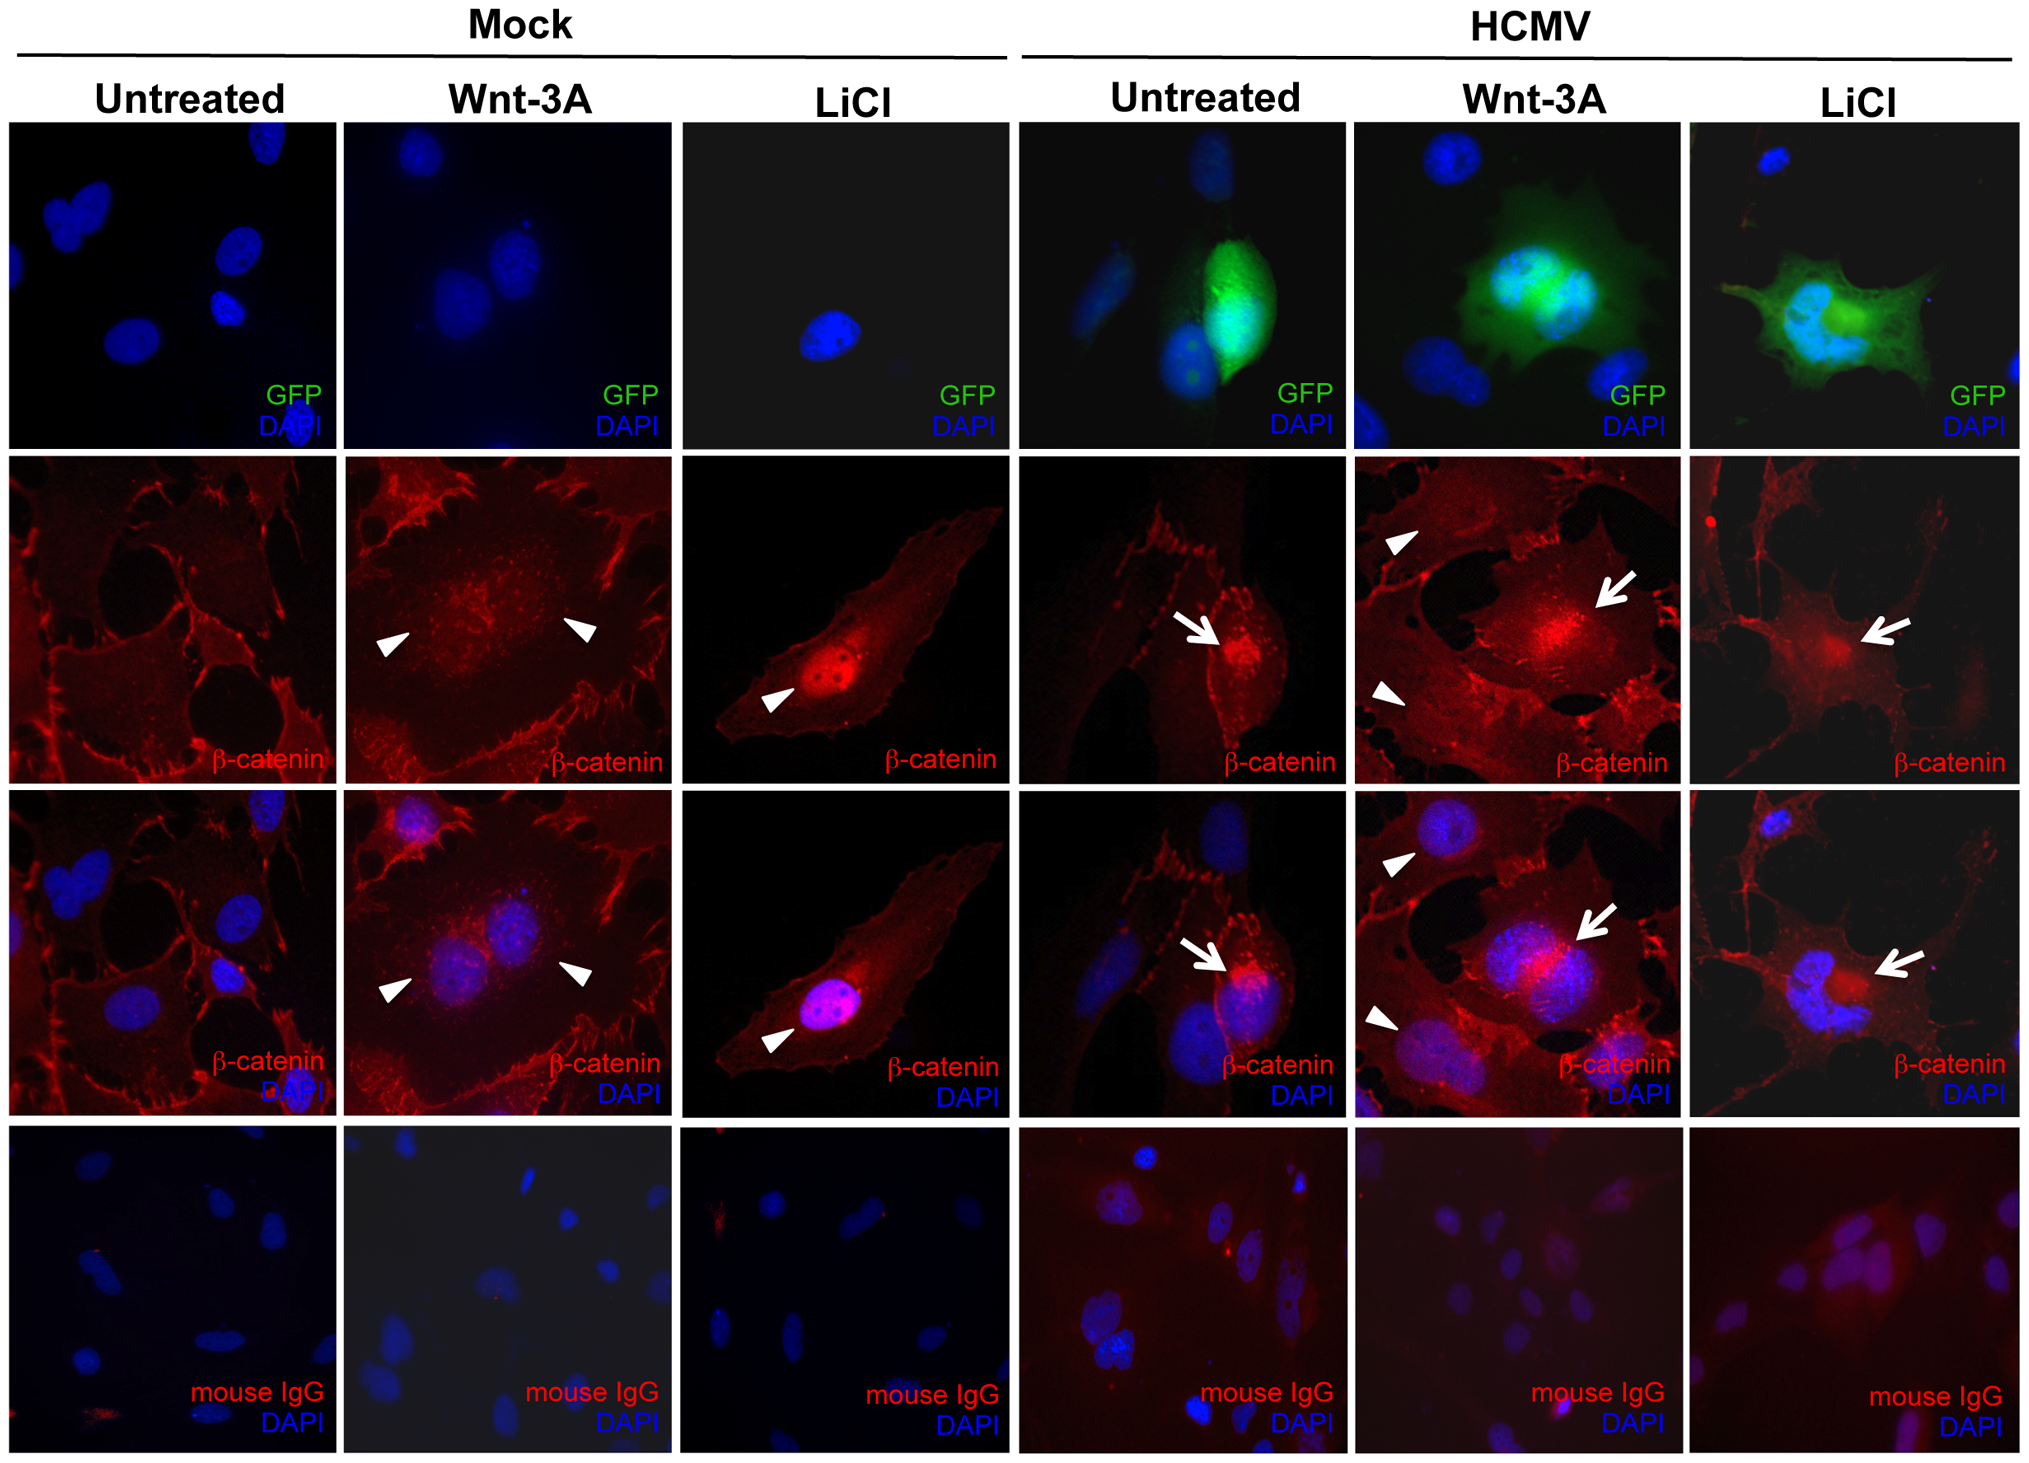 HCMV infection inhibits β-catenin nuclear translocation in EVTs.